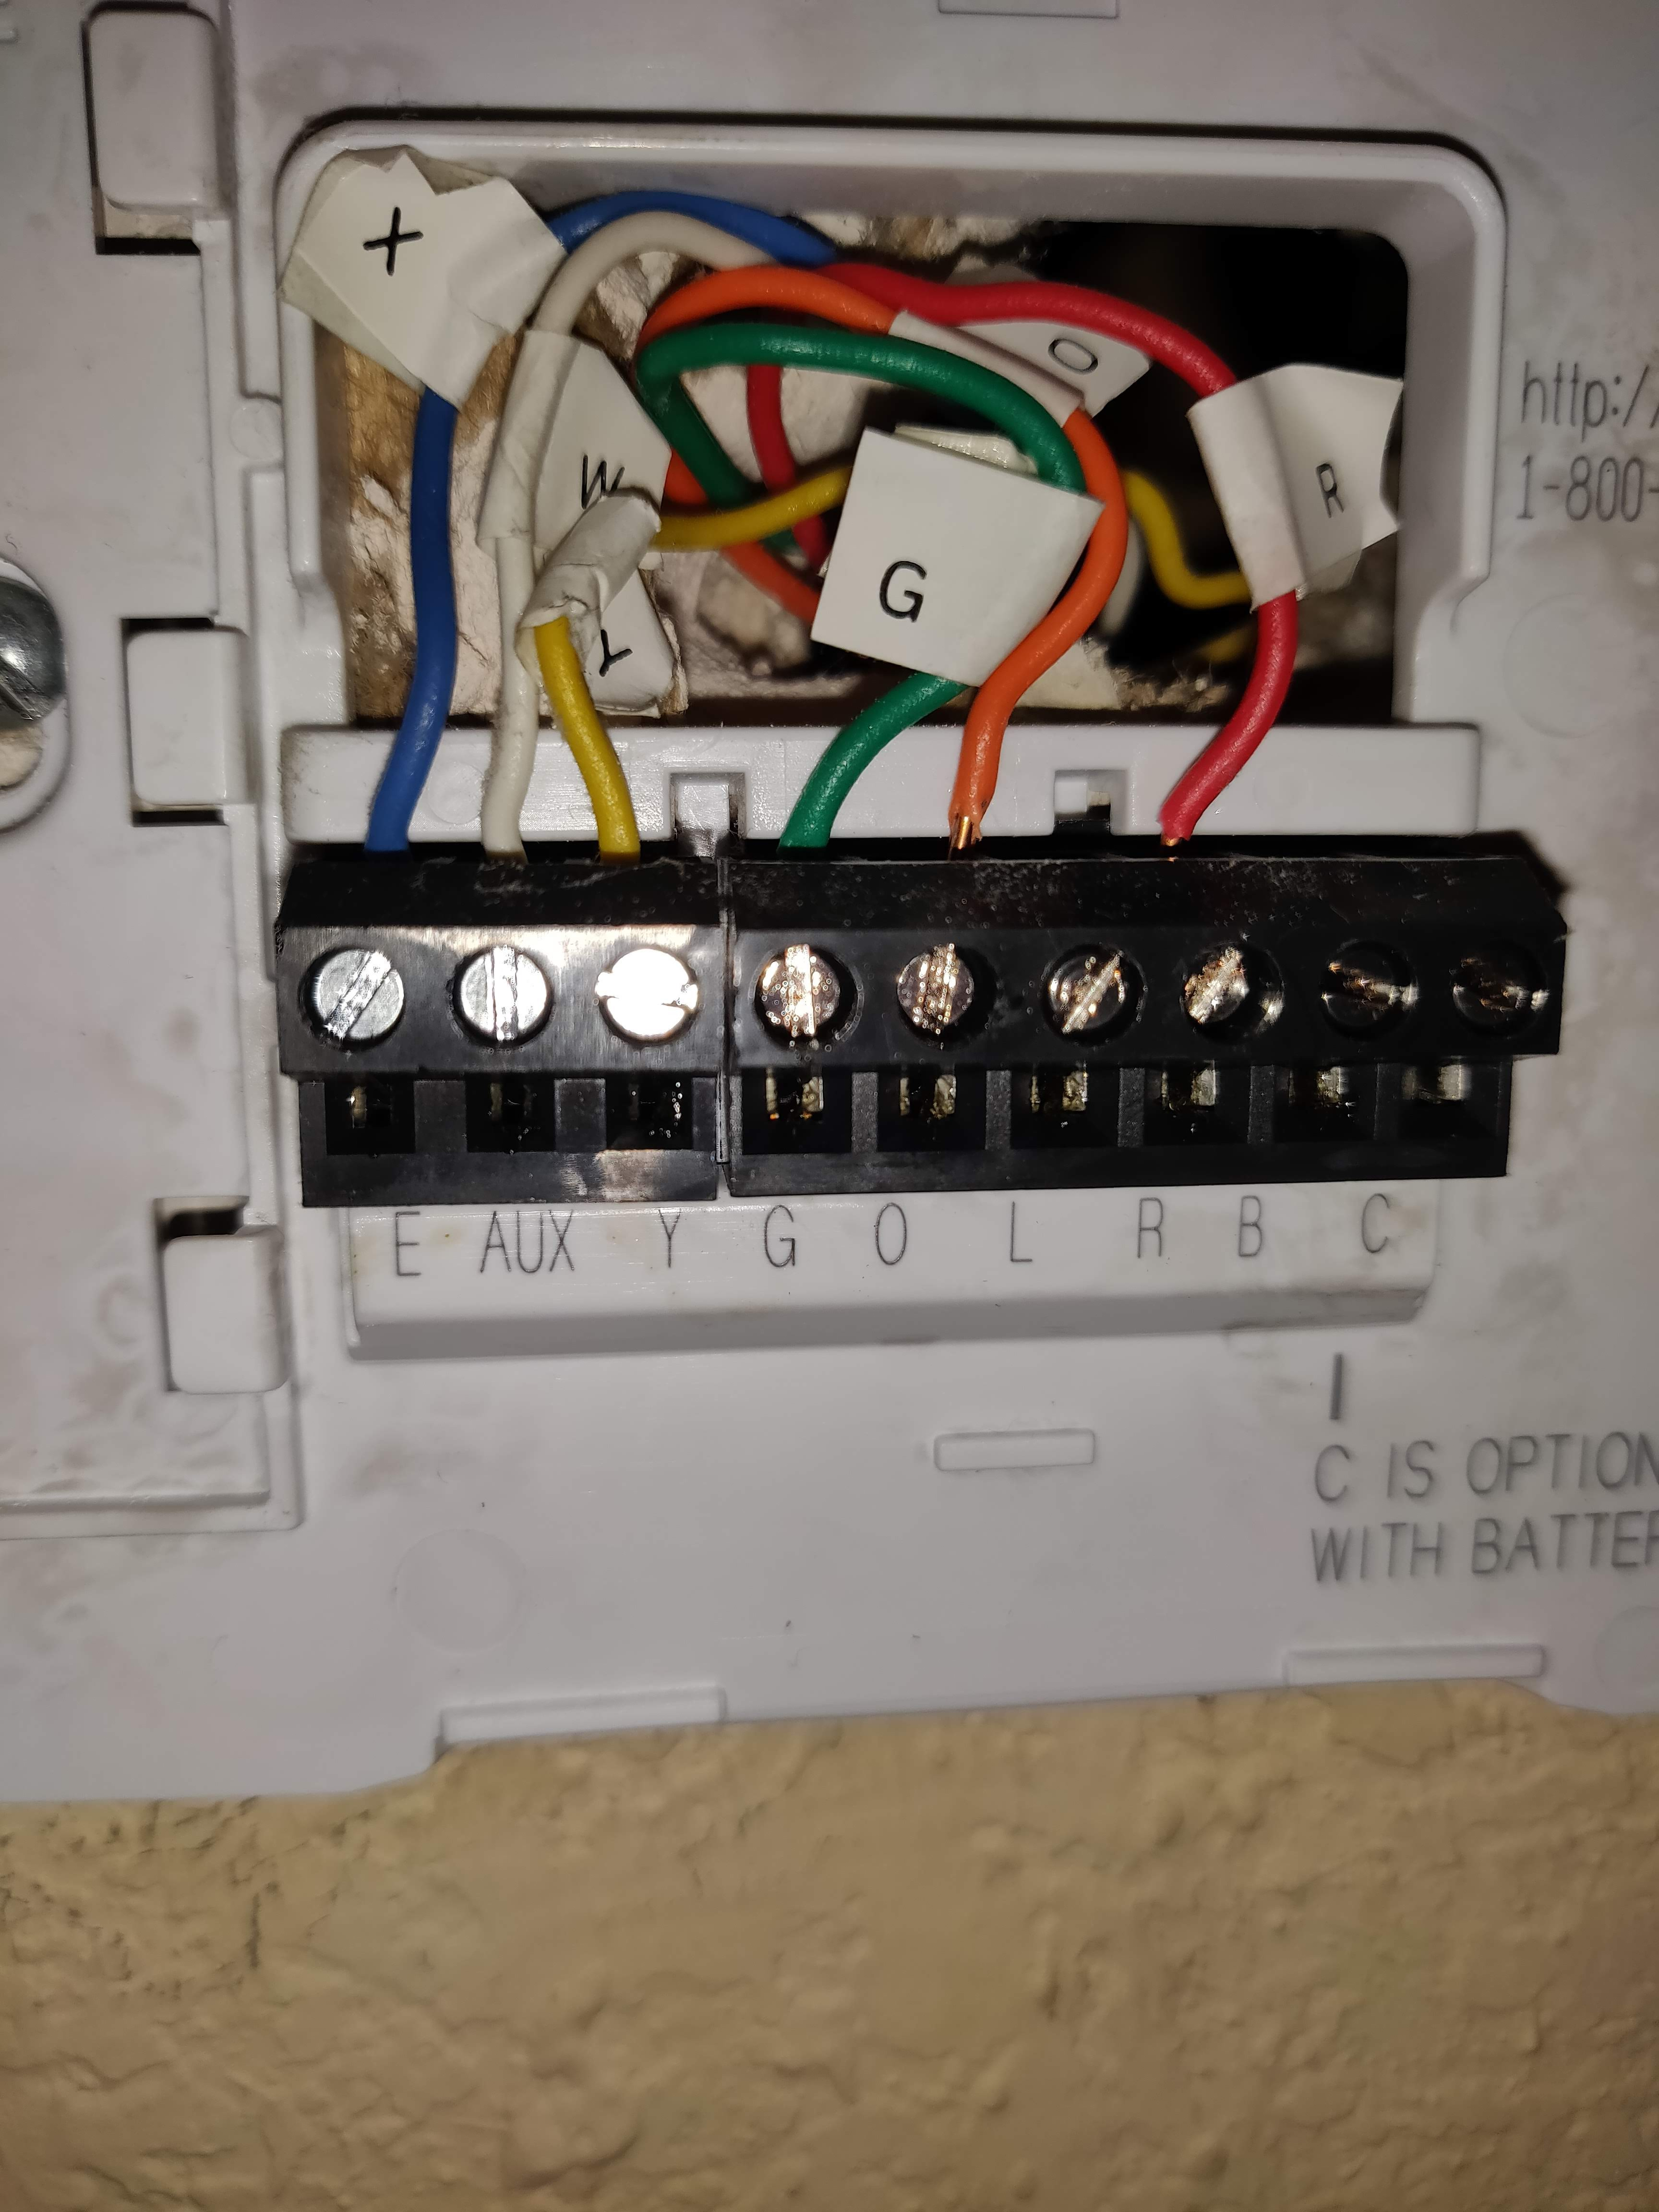 Thermostat Wiring Honeywell : thermostat, wiring, honeywell, Figuring, Wiring, Honeywell, Google, Community